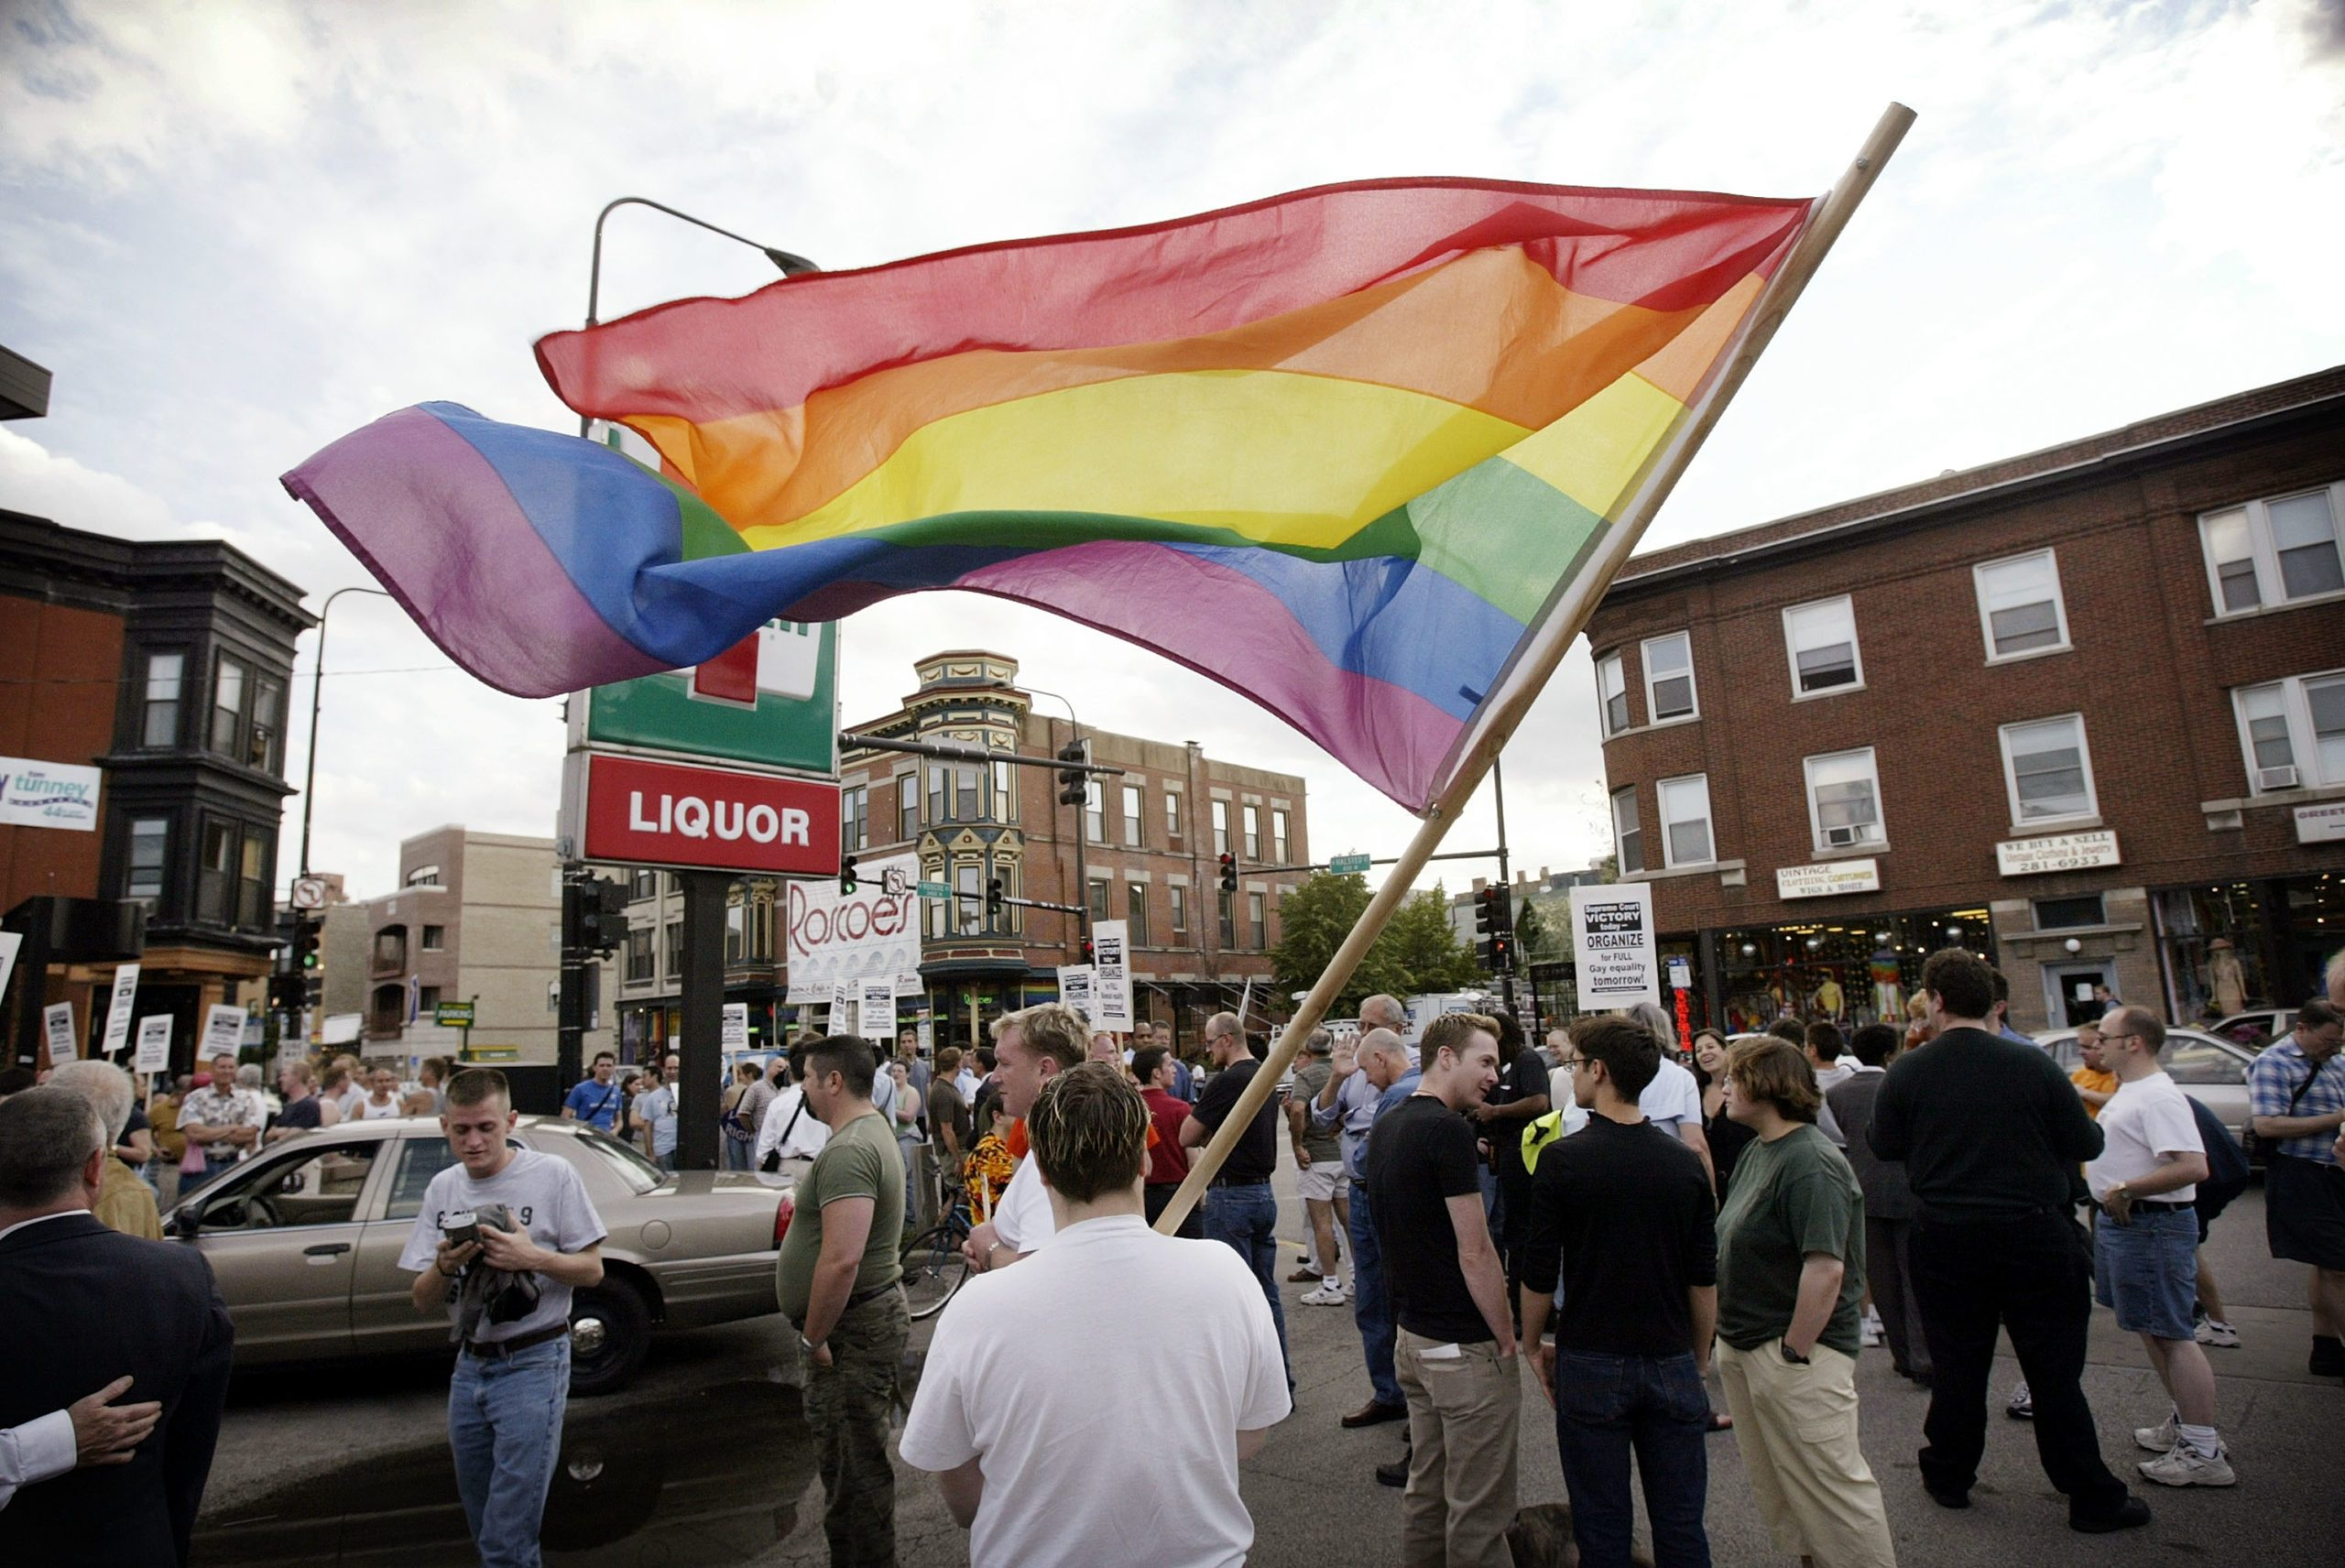 Supreme Court Sodomy Ruling Cheered In Chicago